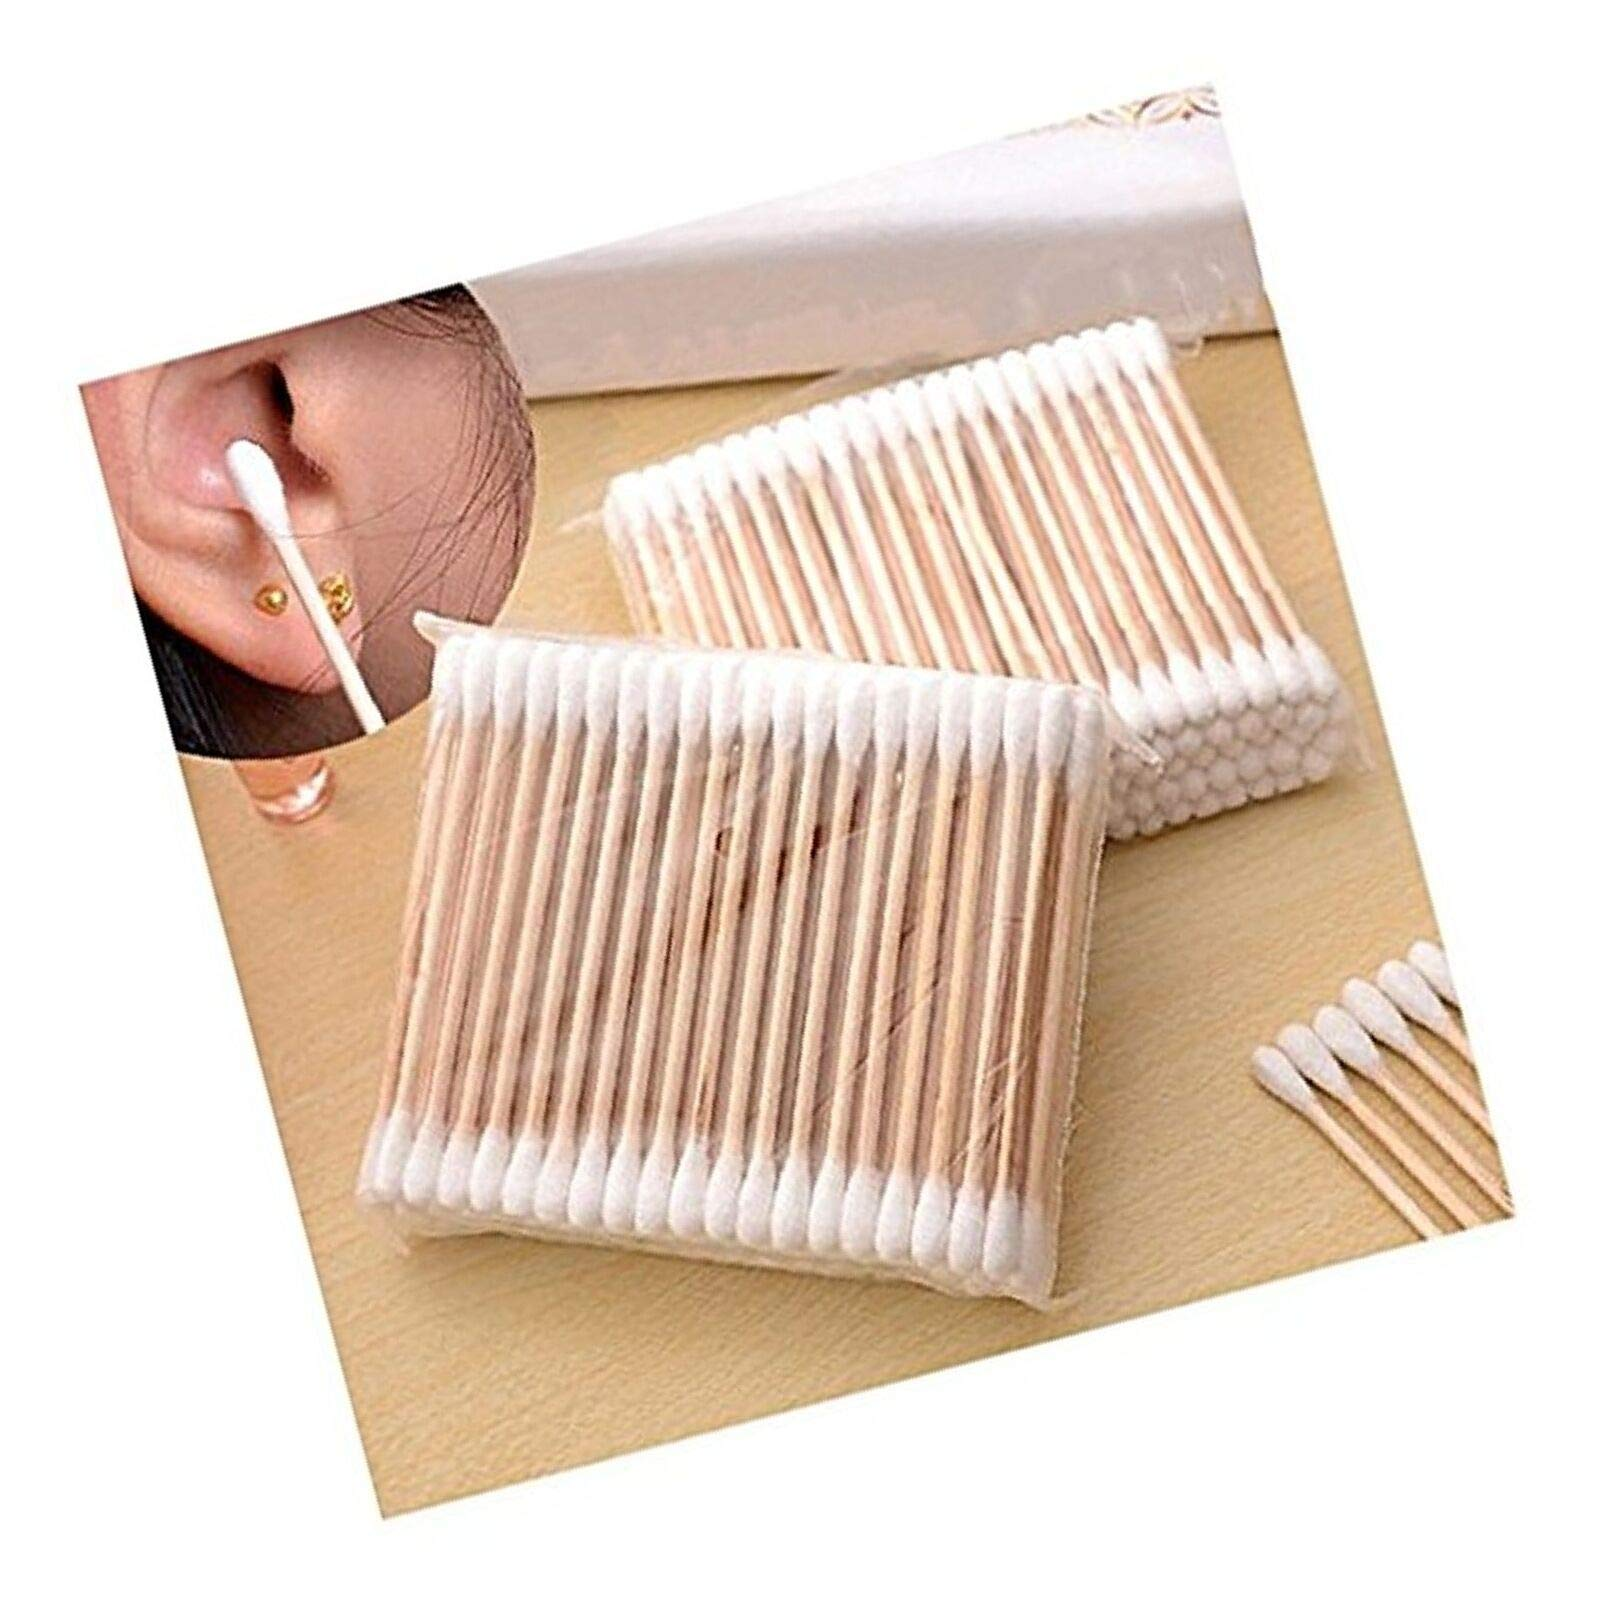 Brown-Fox 100Pcs New Disposable Cotton Swab Applicator Q-tip Swabs